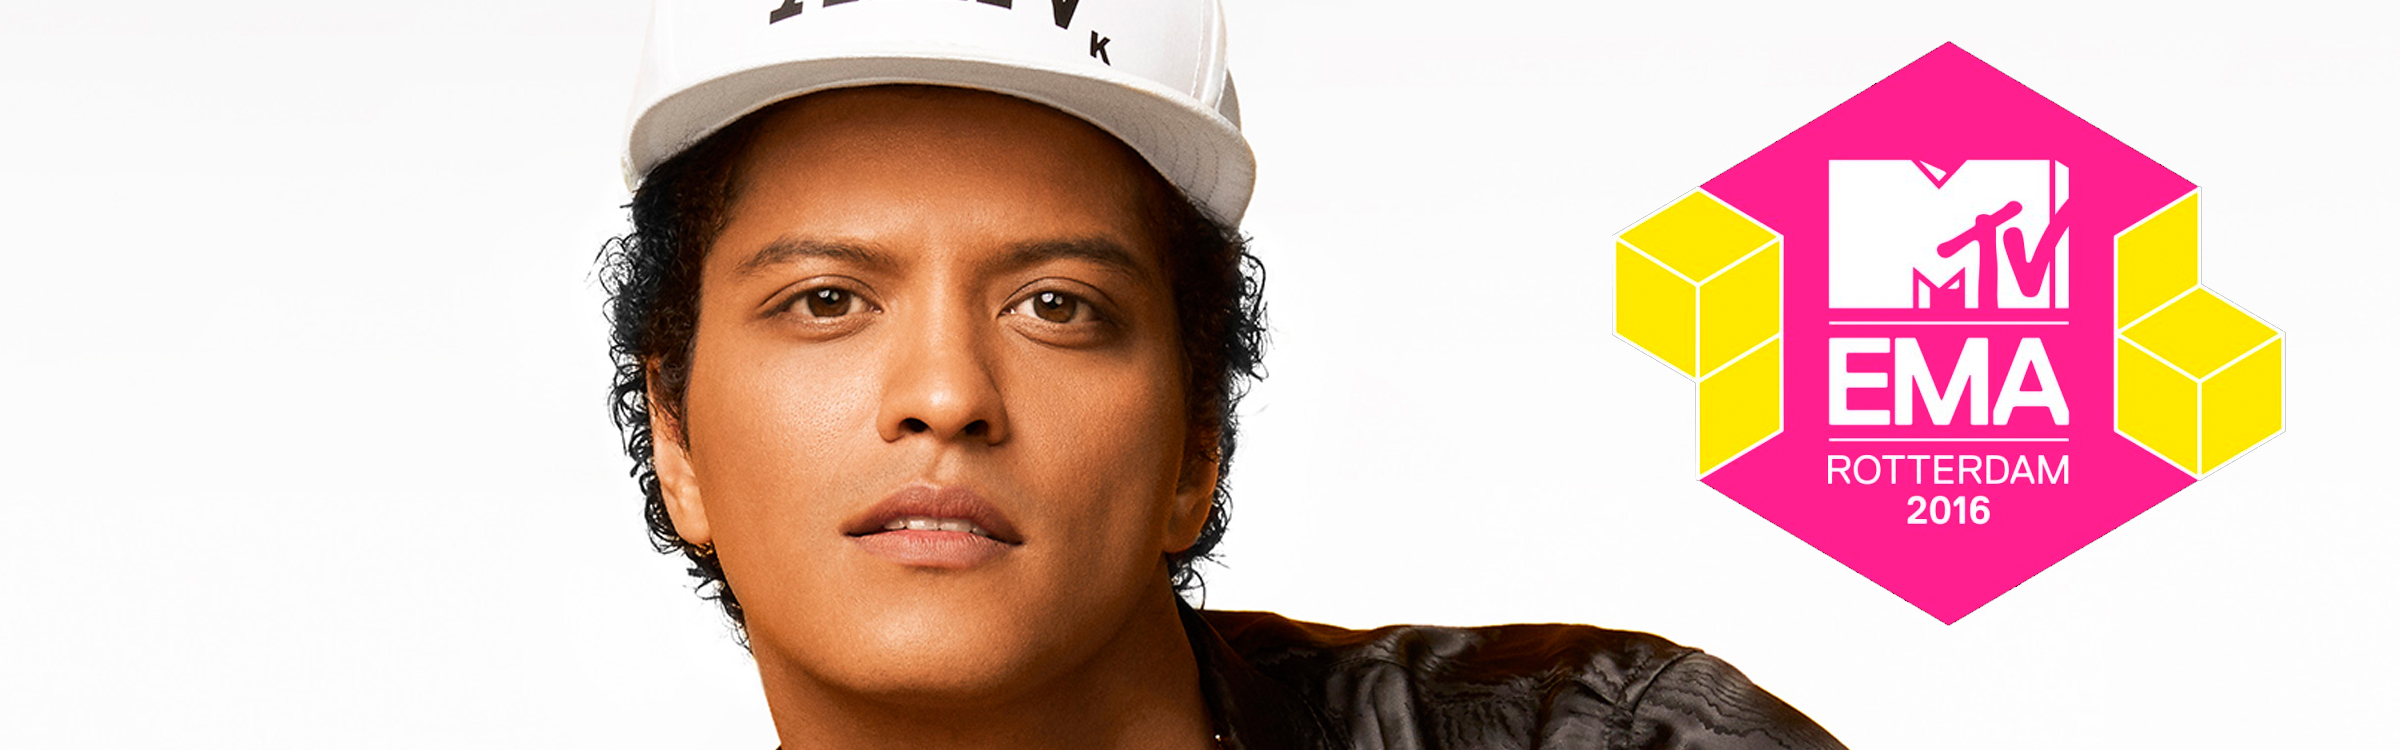 Bruno mtv header